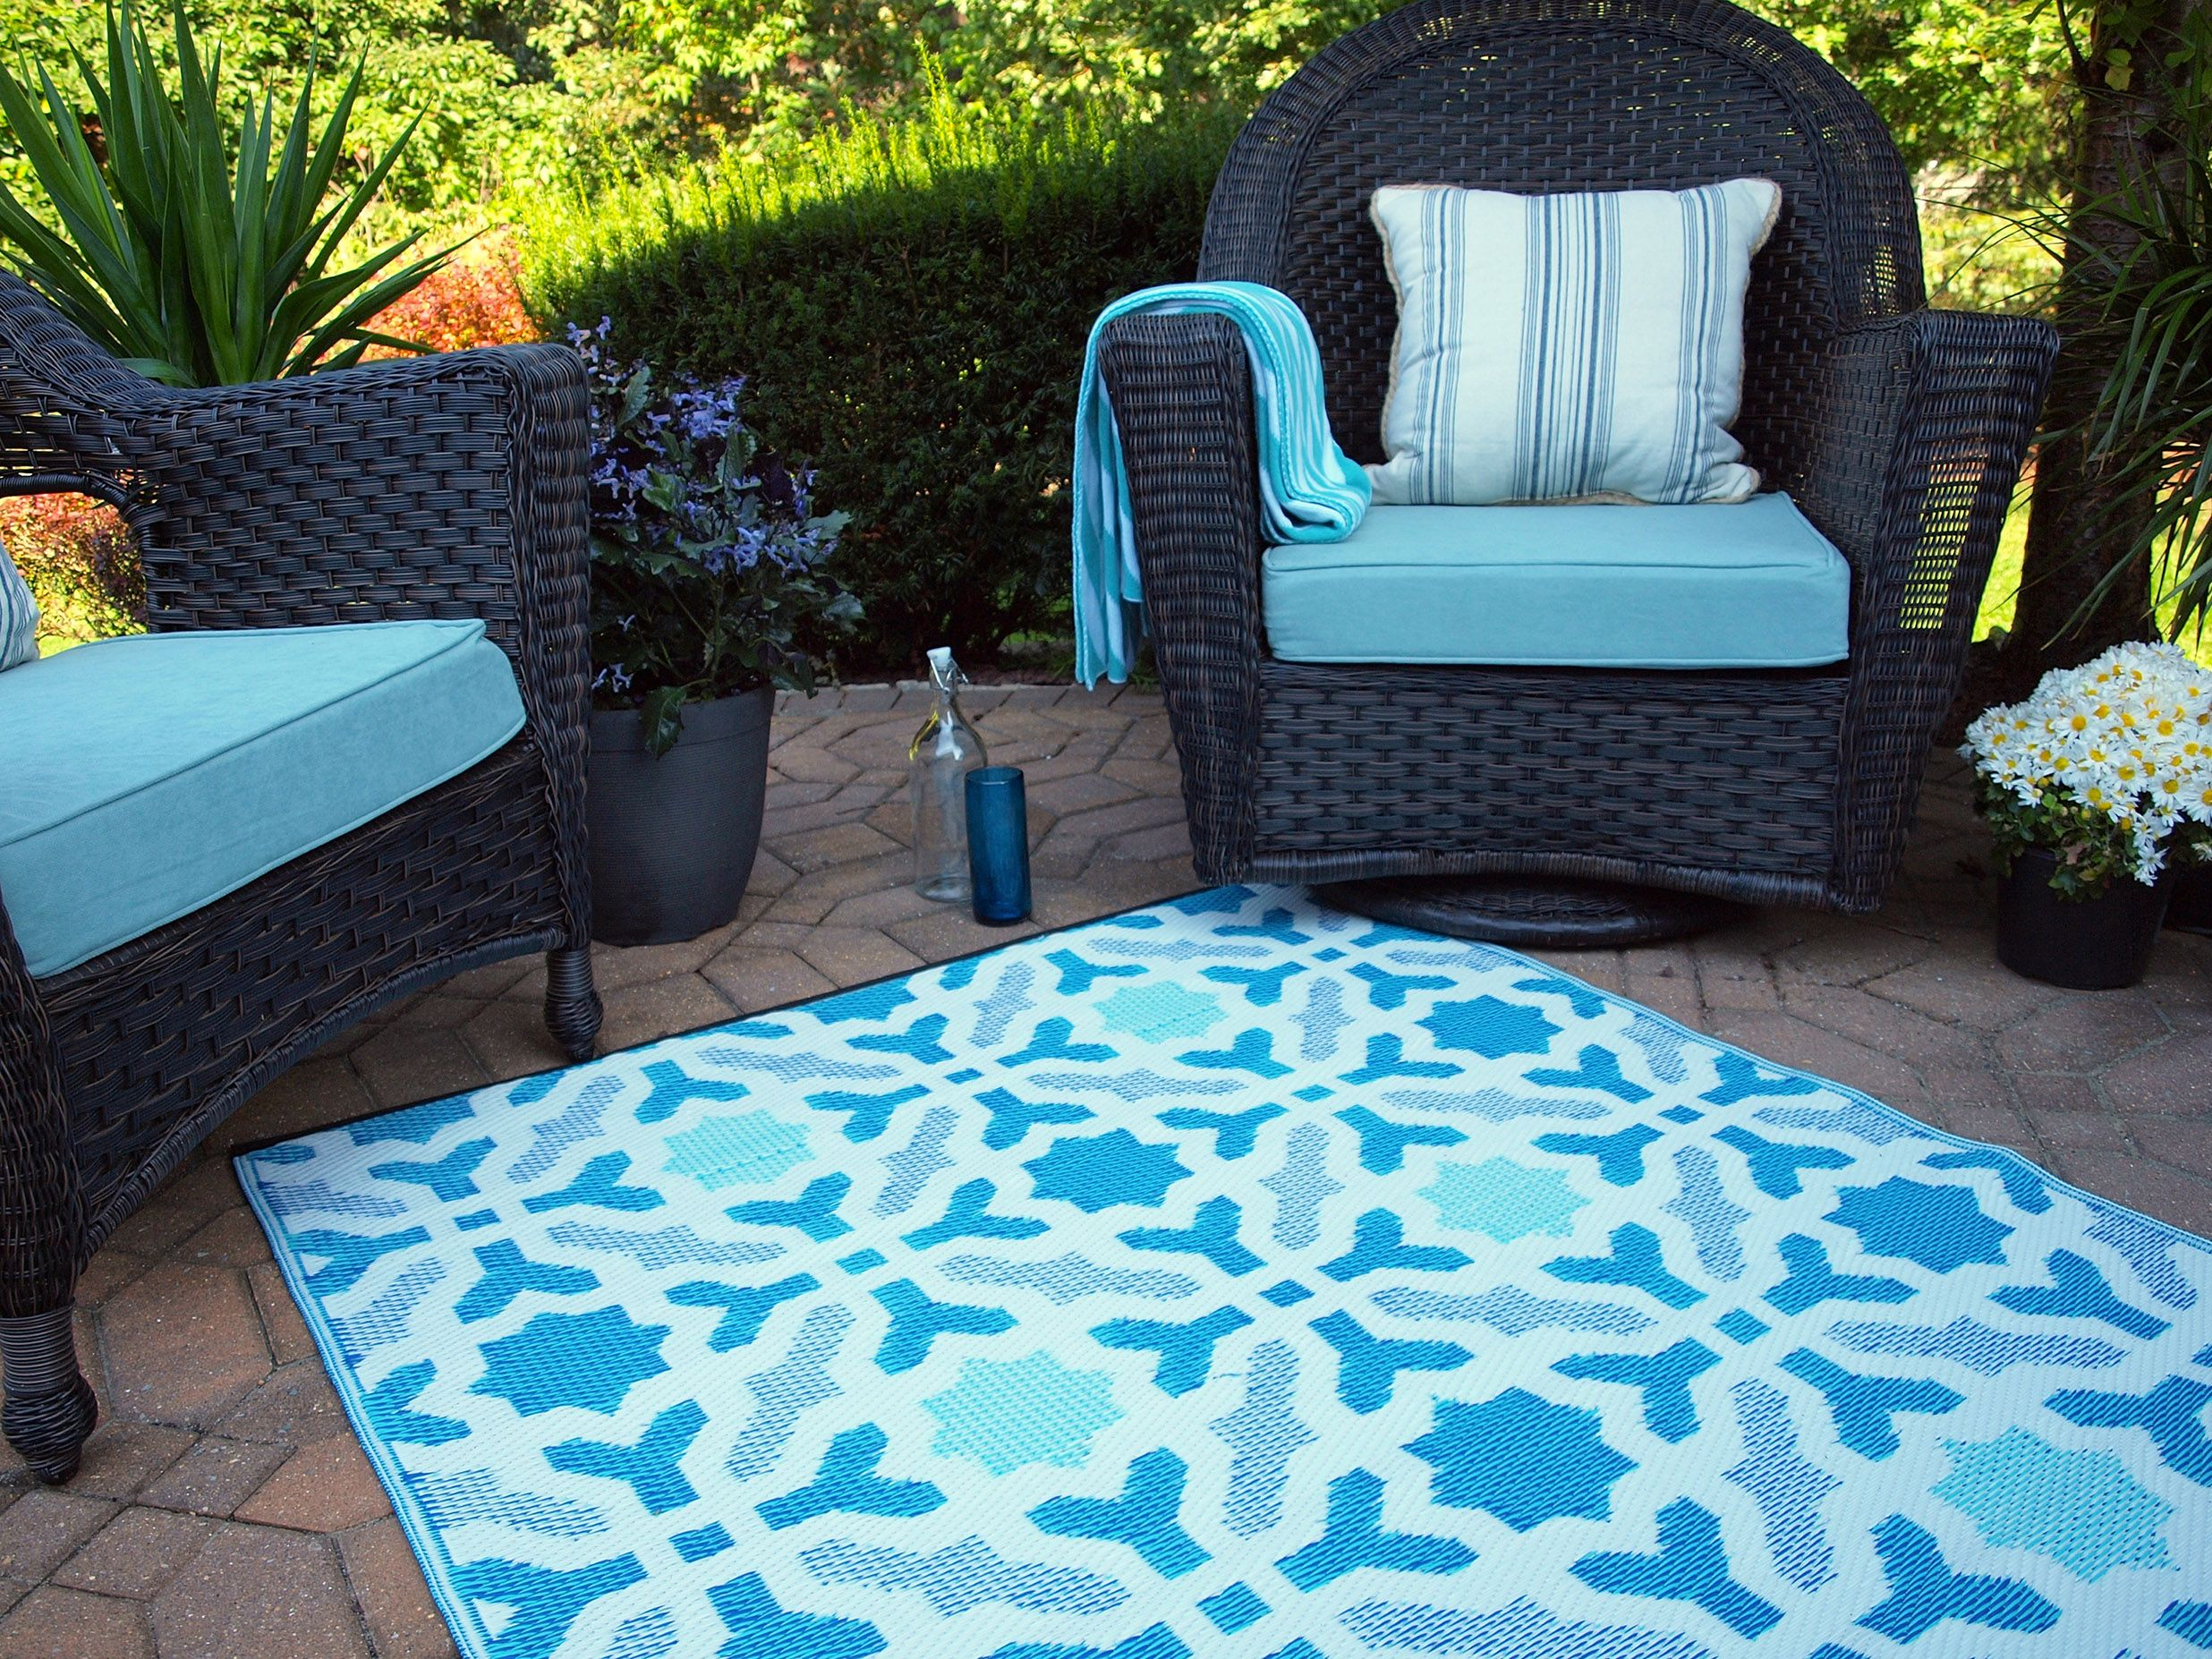 blue seville outdoor rugfab habitat from cuckooland #rug